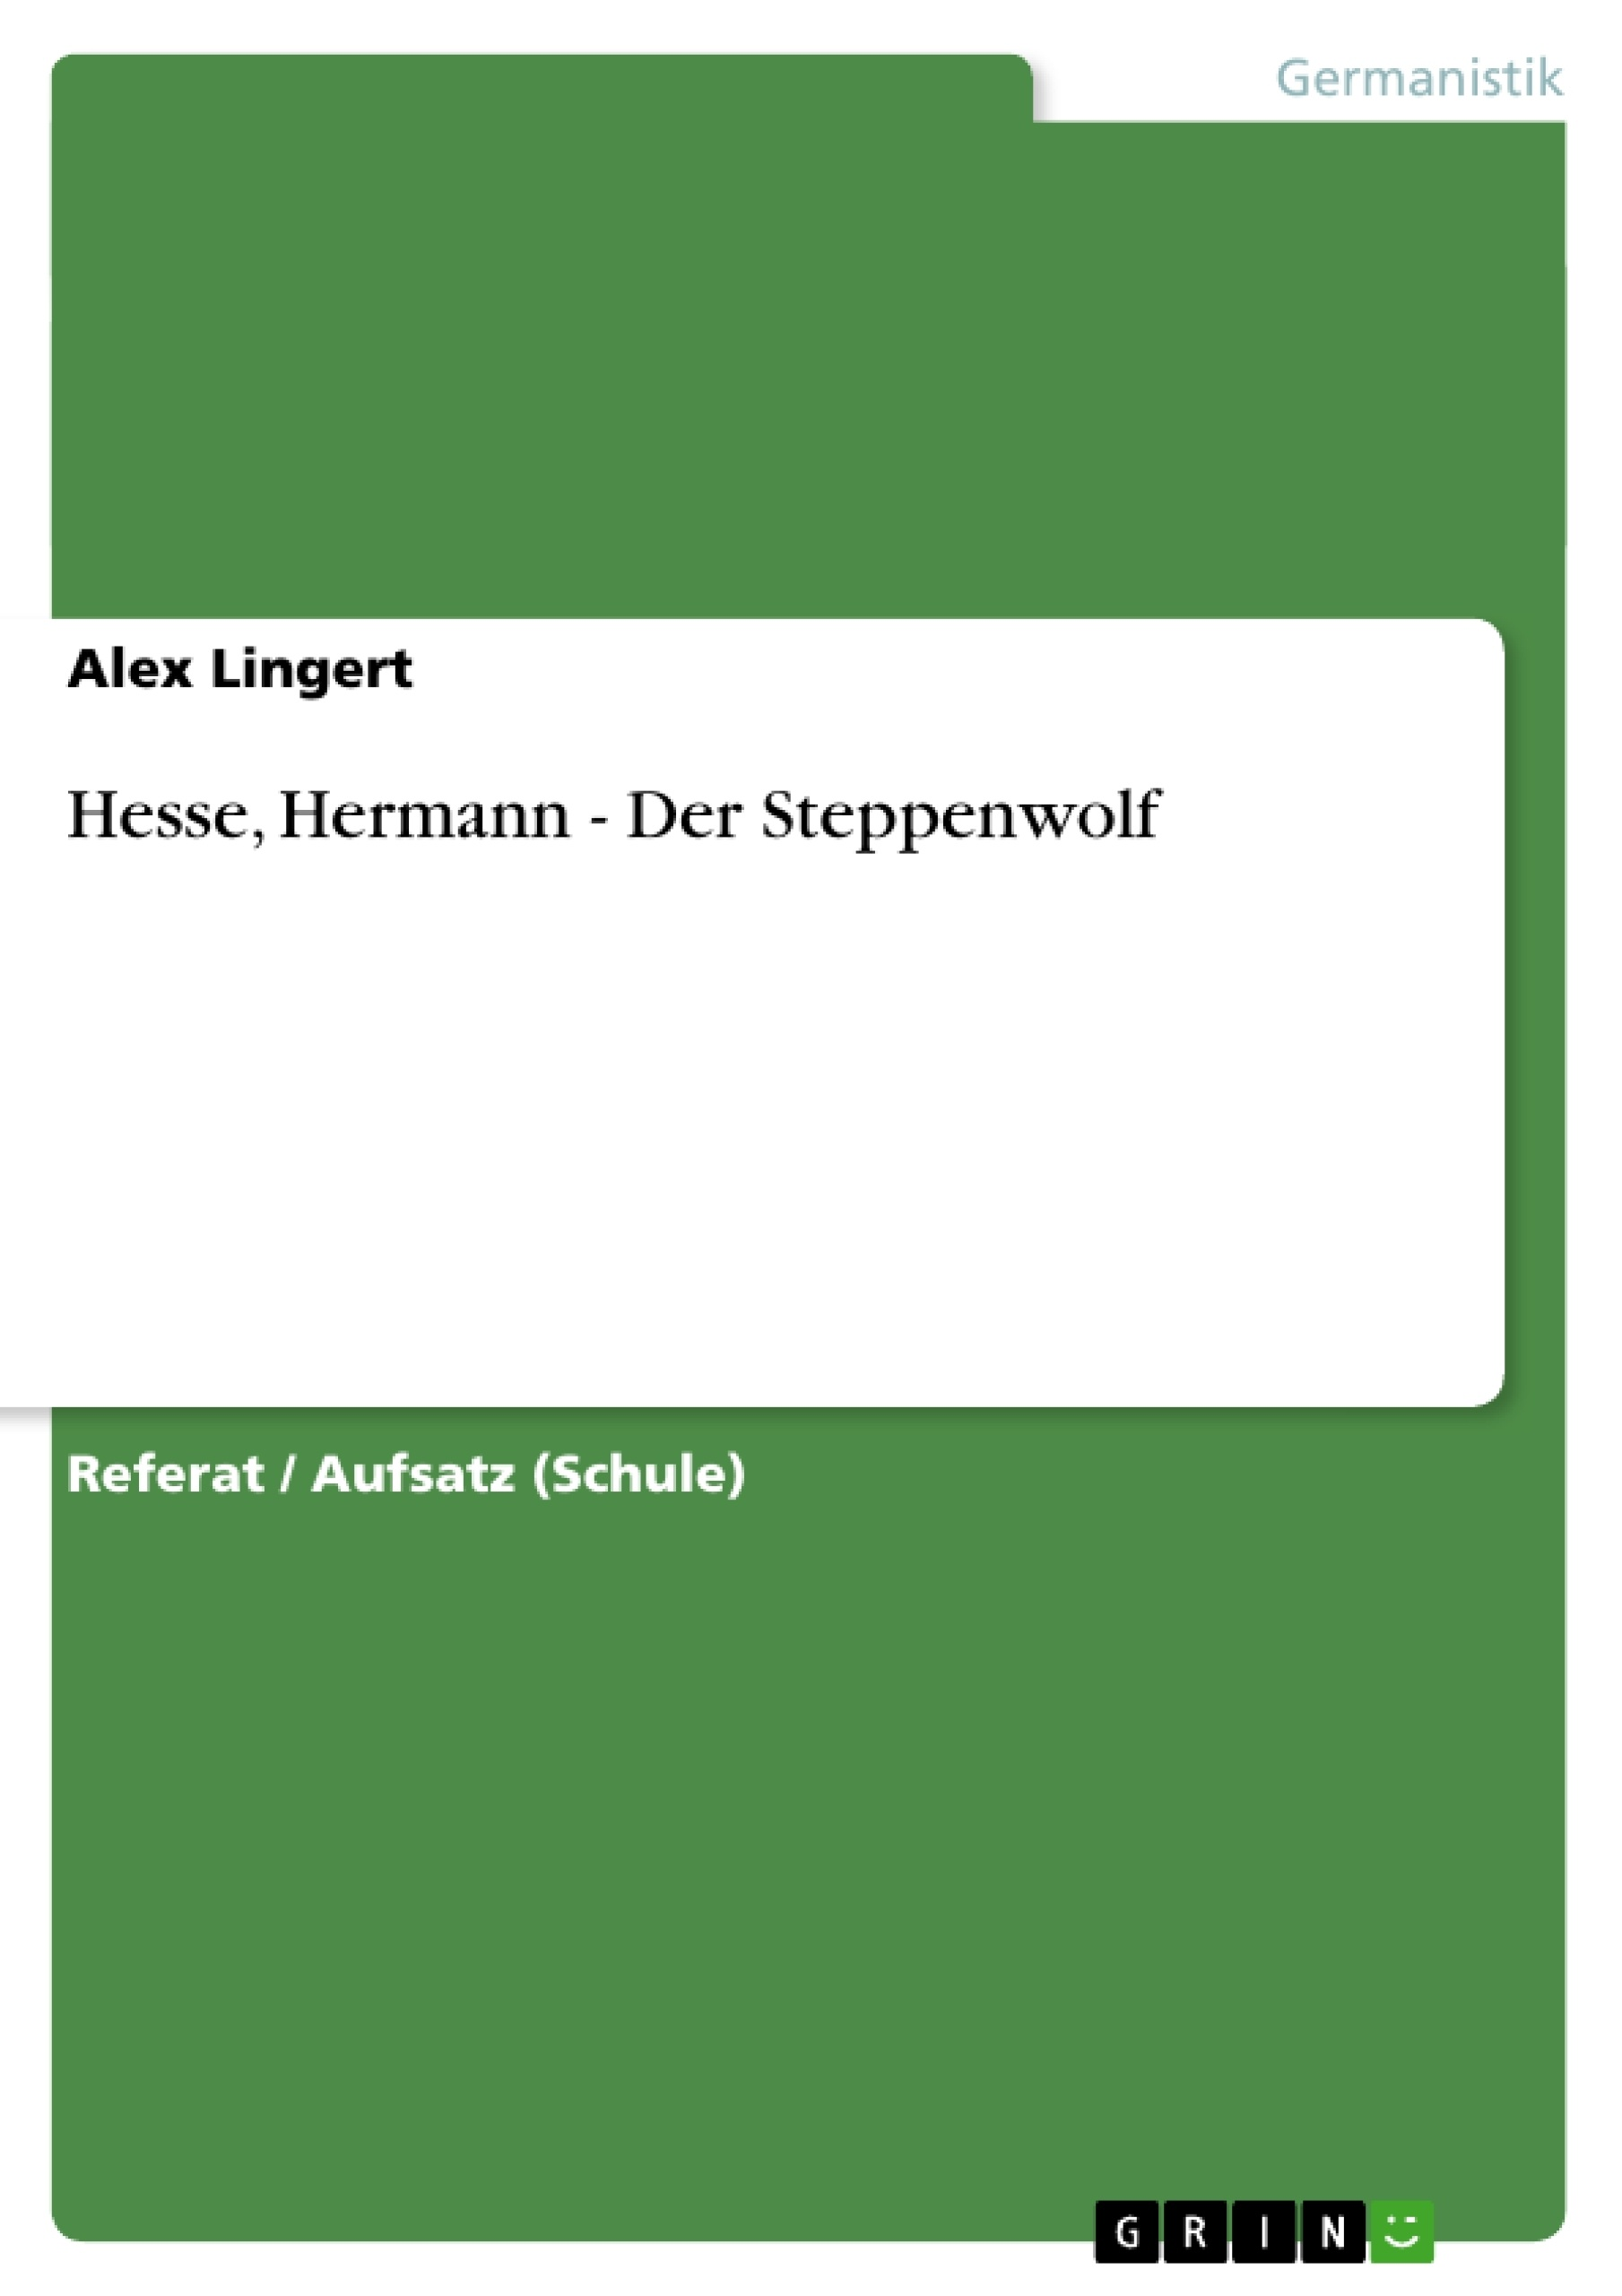 Titel: Hesse, Hermann - Der Steppenwolf